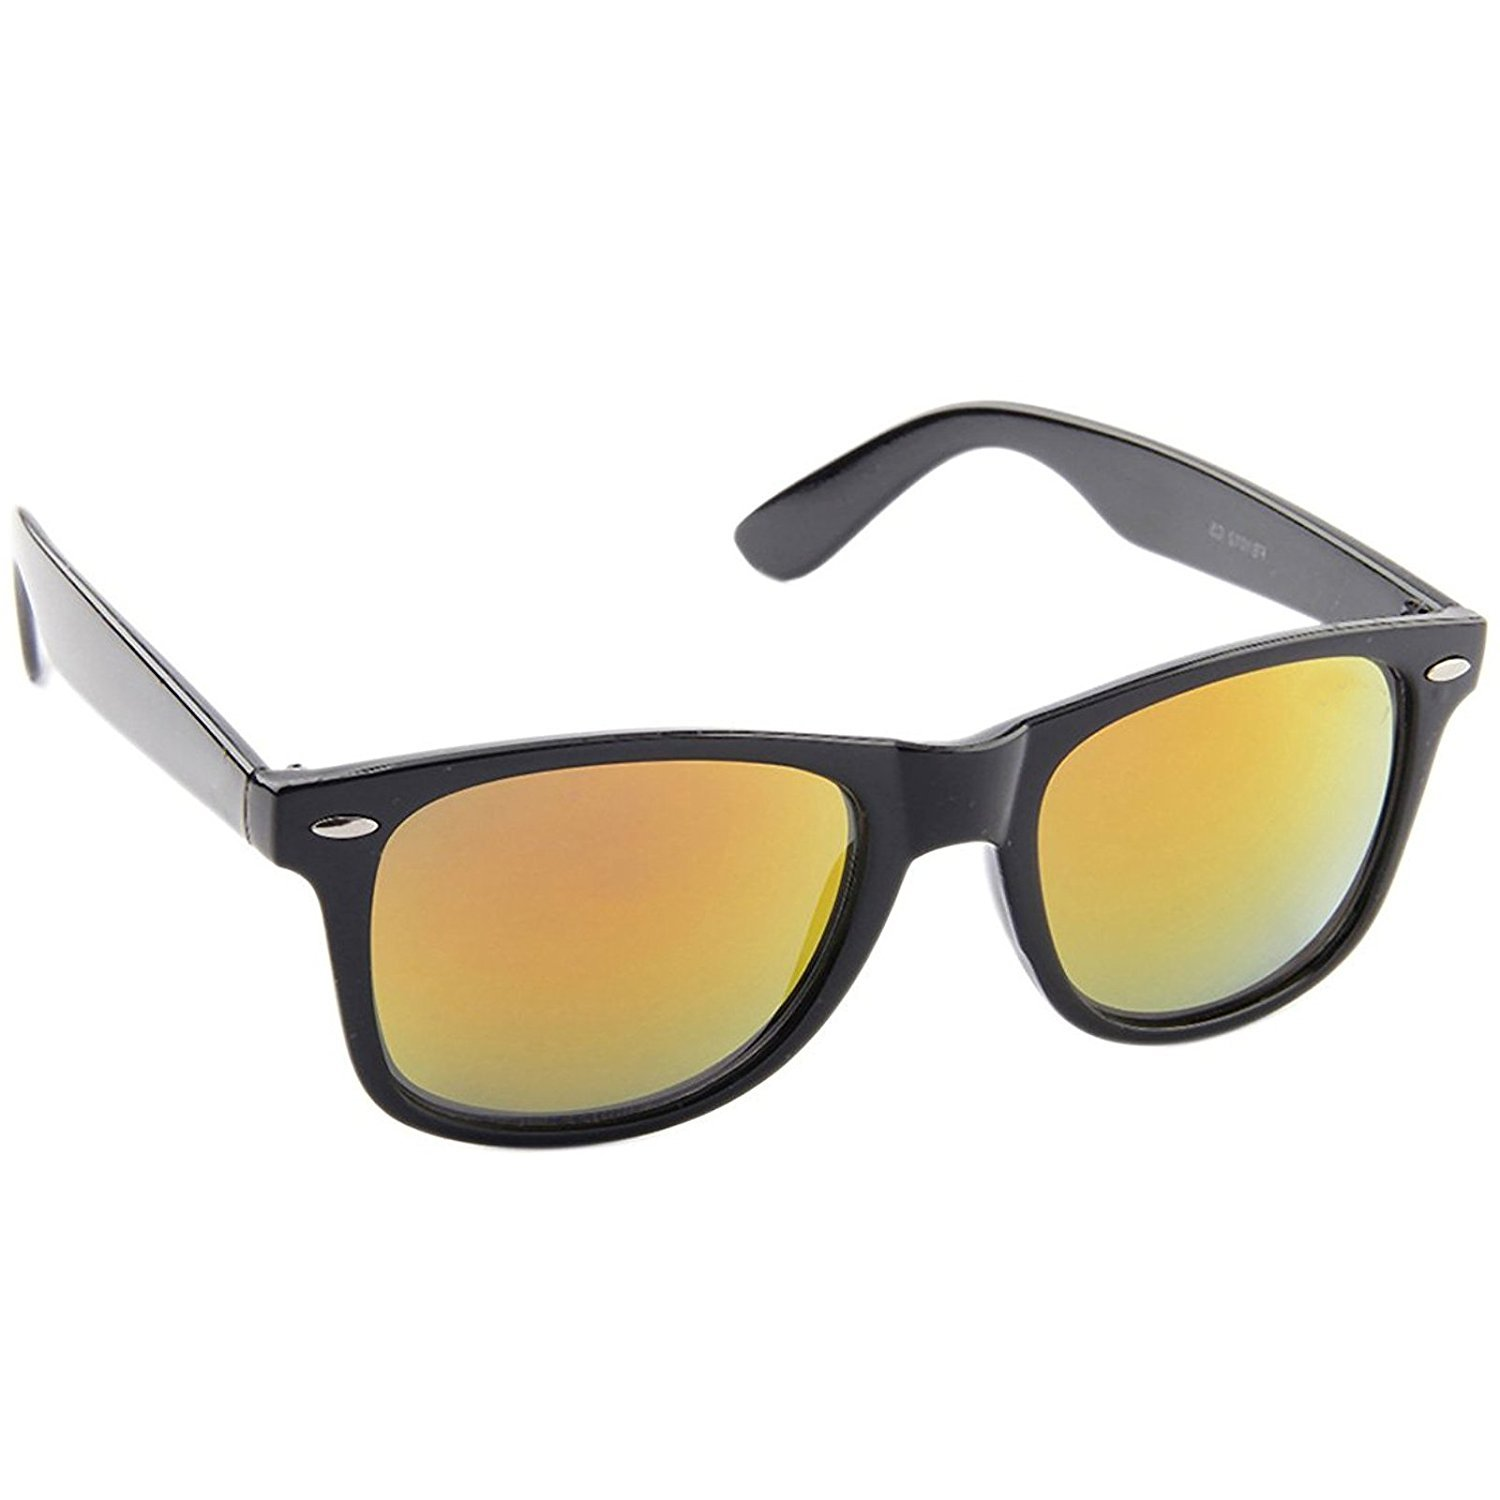 f126fd62065 Dervin Yellow Lens Black Frame Wayfarer Sunglasses for Men and Women   Amazon.in  Clothing   Accessories